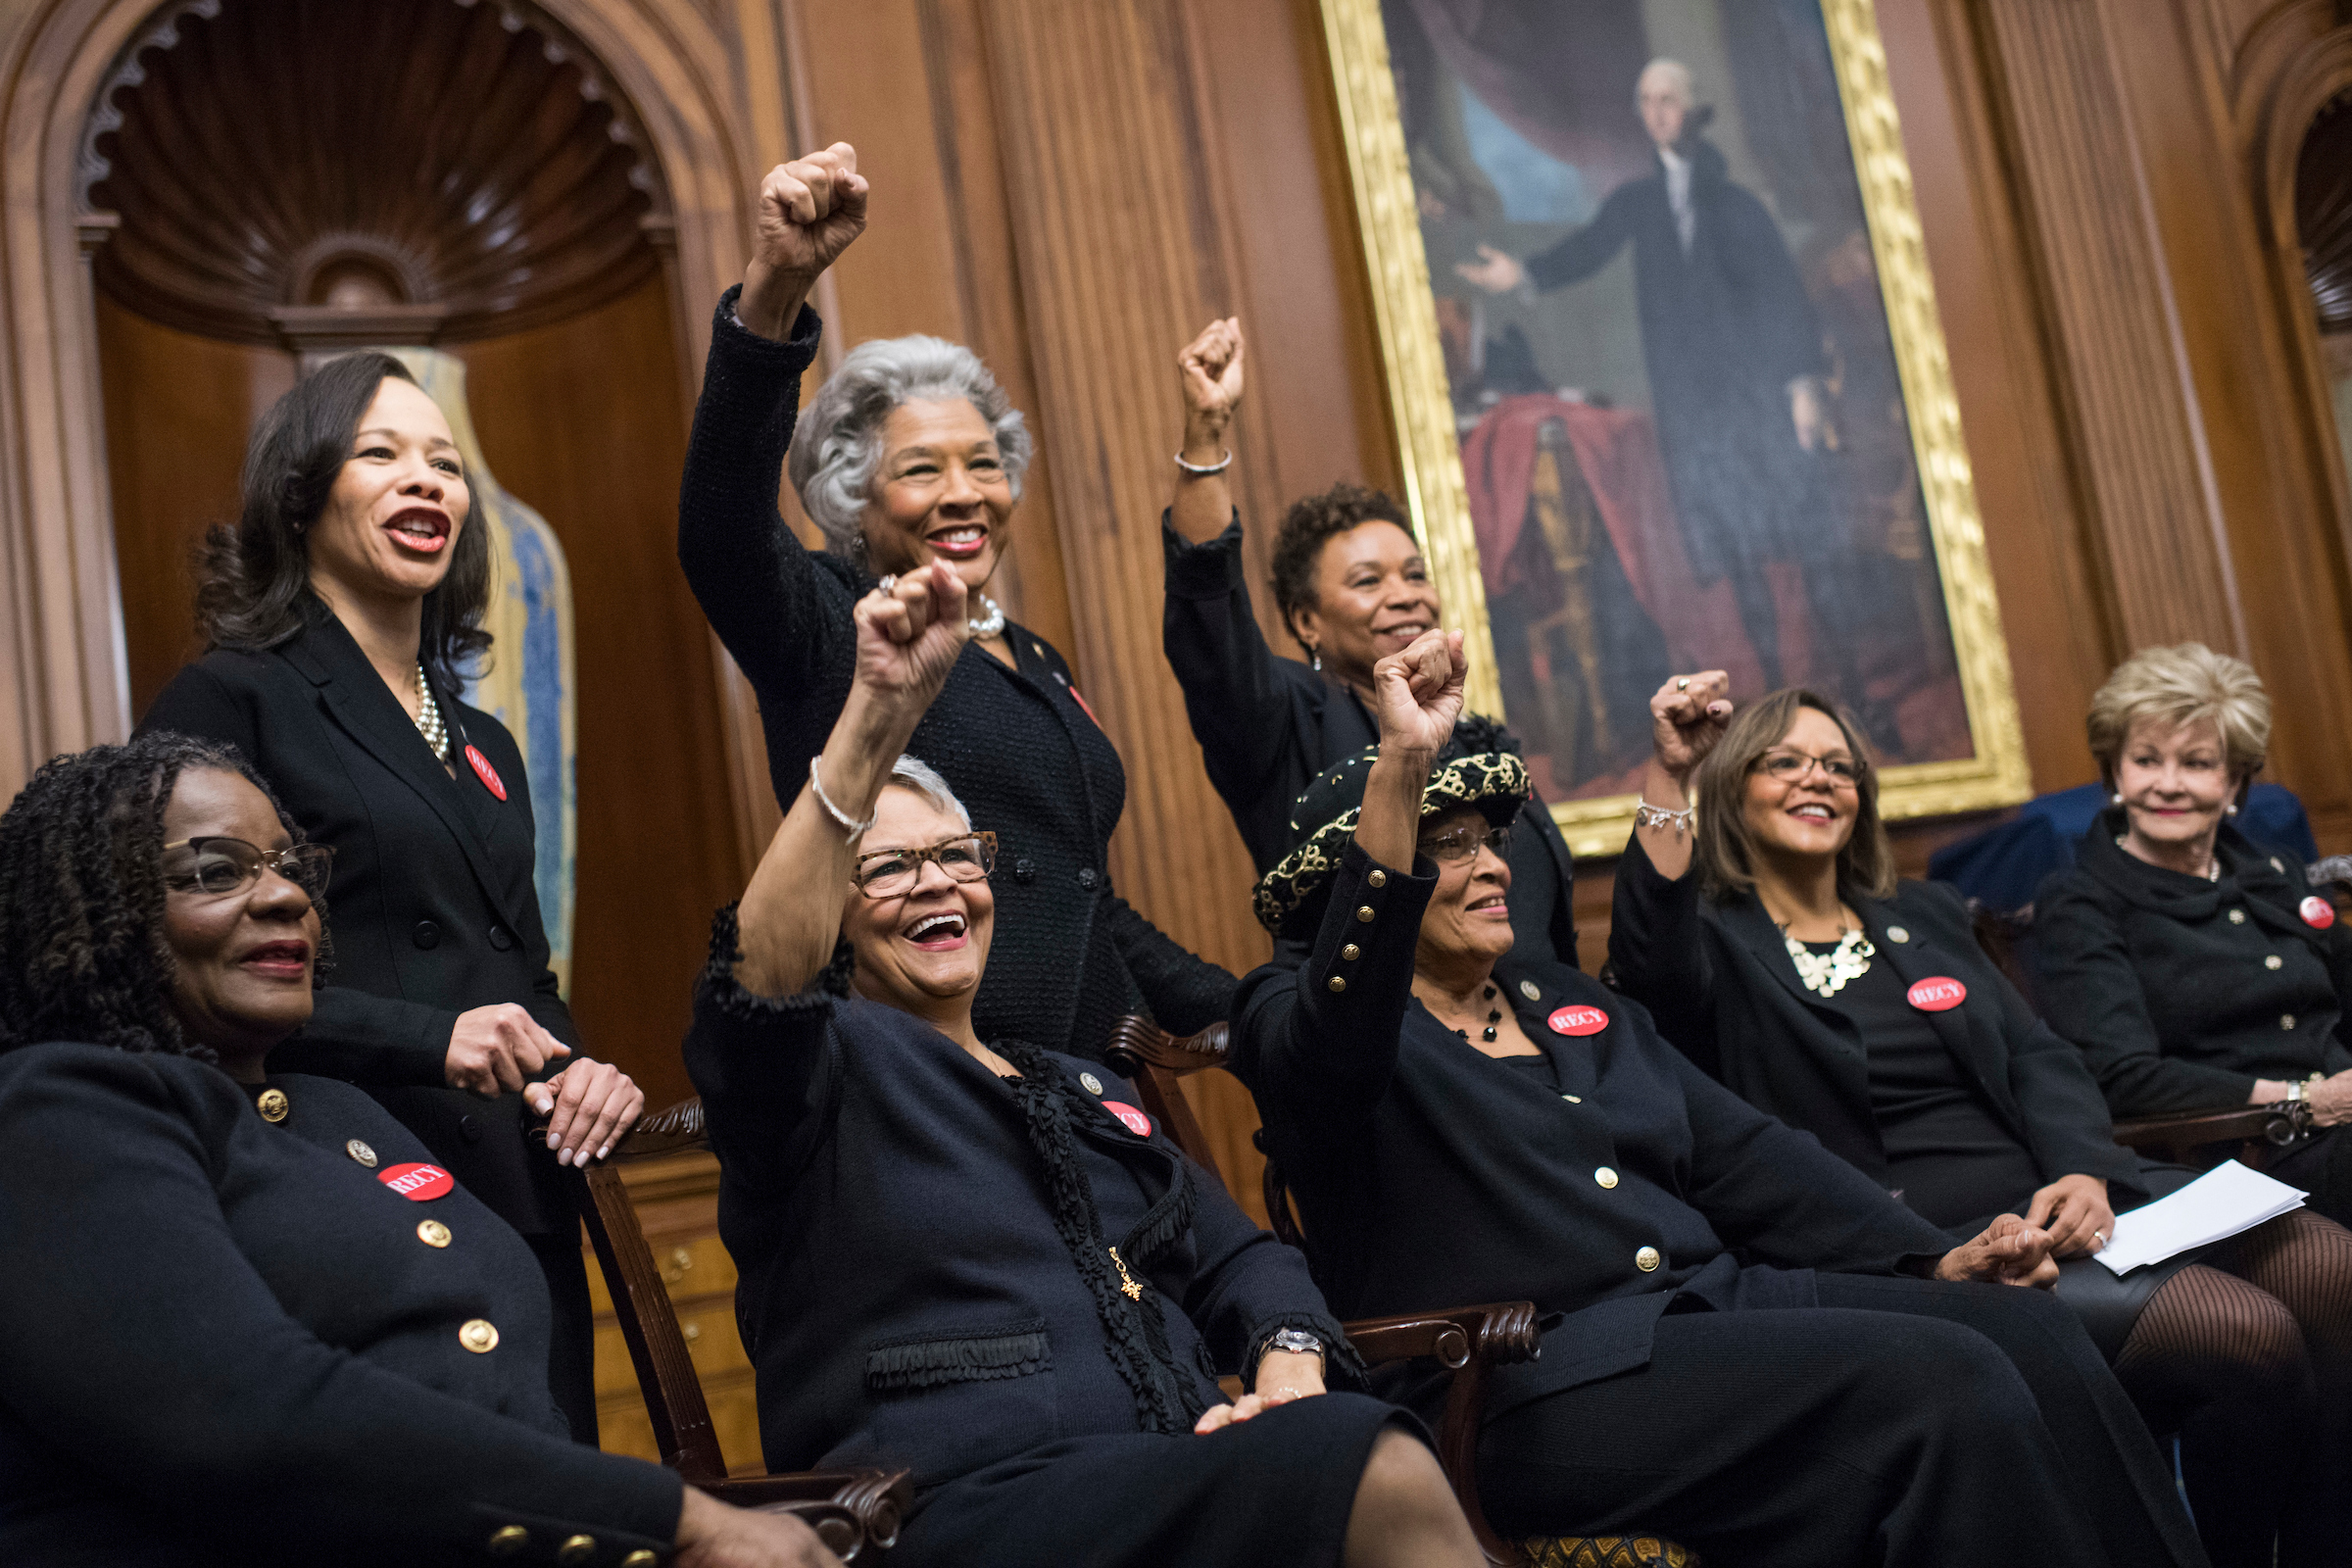 From left, Reps. Gwen Moore, D-Wis., Lisa Blunt Rochester, D-Del., Bonnie Watson Coleman, D-N.J., Joyce Beatty, D-Ohio, Alma Adams, D-N.C., Barbara Lee, D-Calif., Robin Kelly, D-Ill., and Del. Madeleine Bordallo, D-Guam, wear black during a photo op in the Capitol's Rayburn Room to show solidarity with men and women who are speaking out against sexual harassment and discrimination on January 30, 2018. (Photo By Tom Williams/CQ Roll Call)